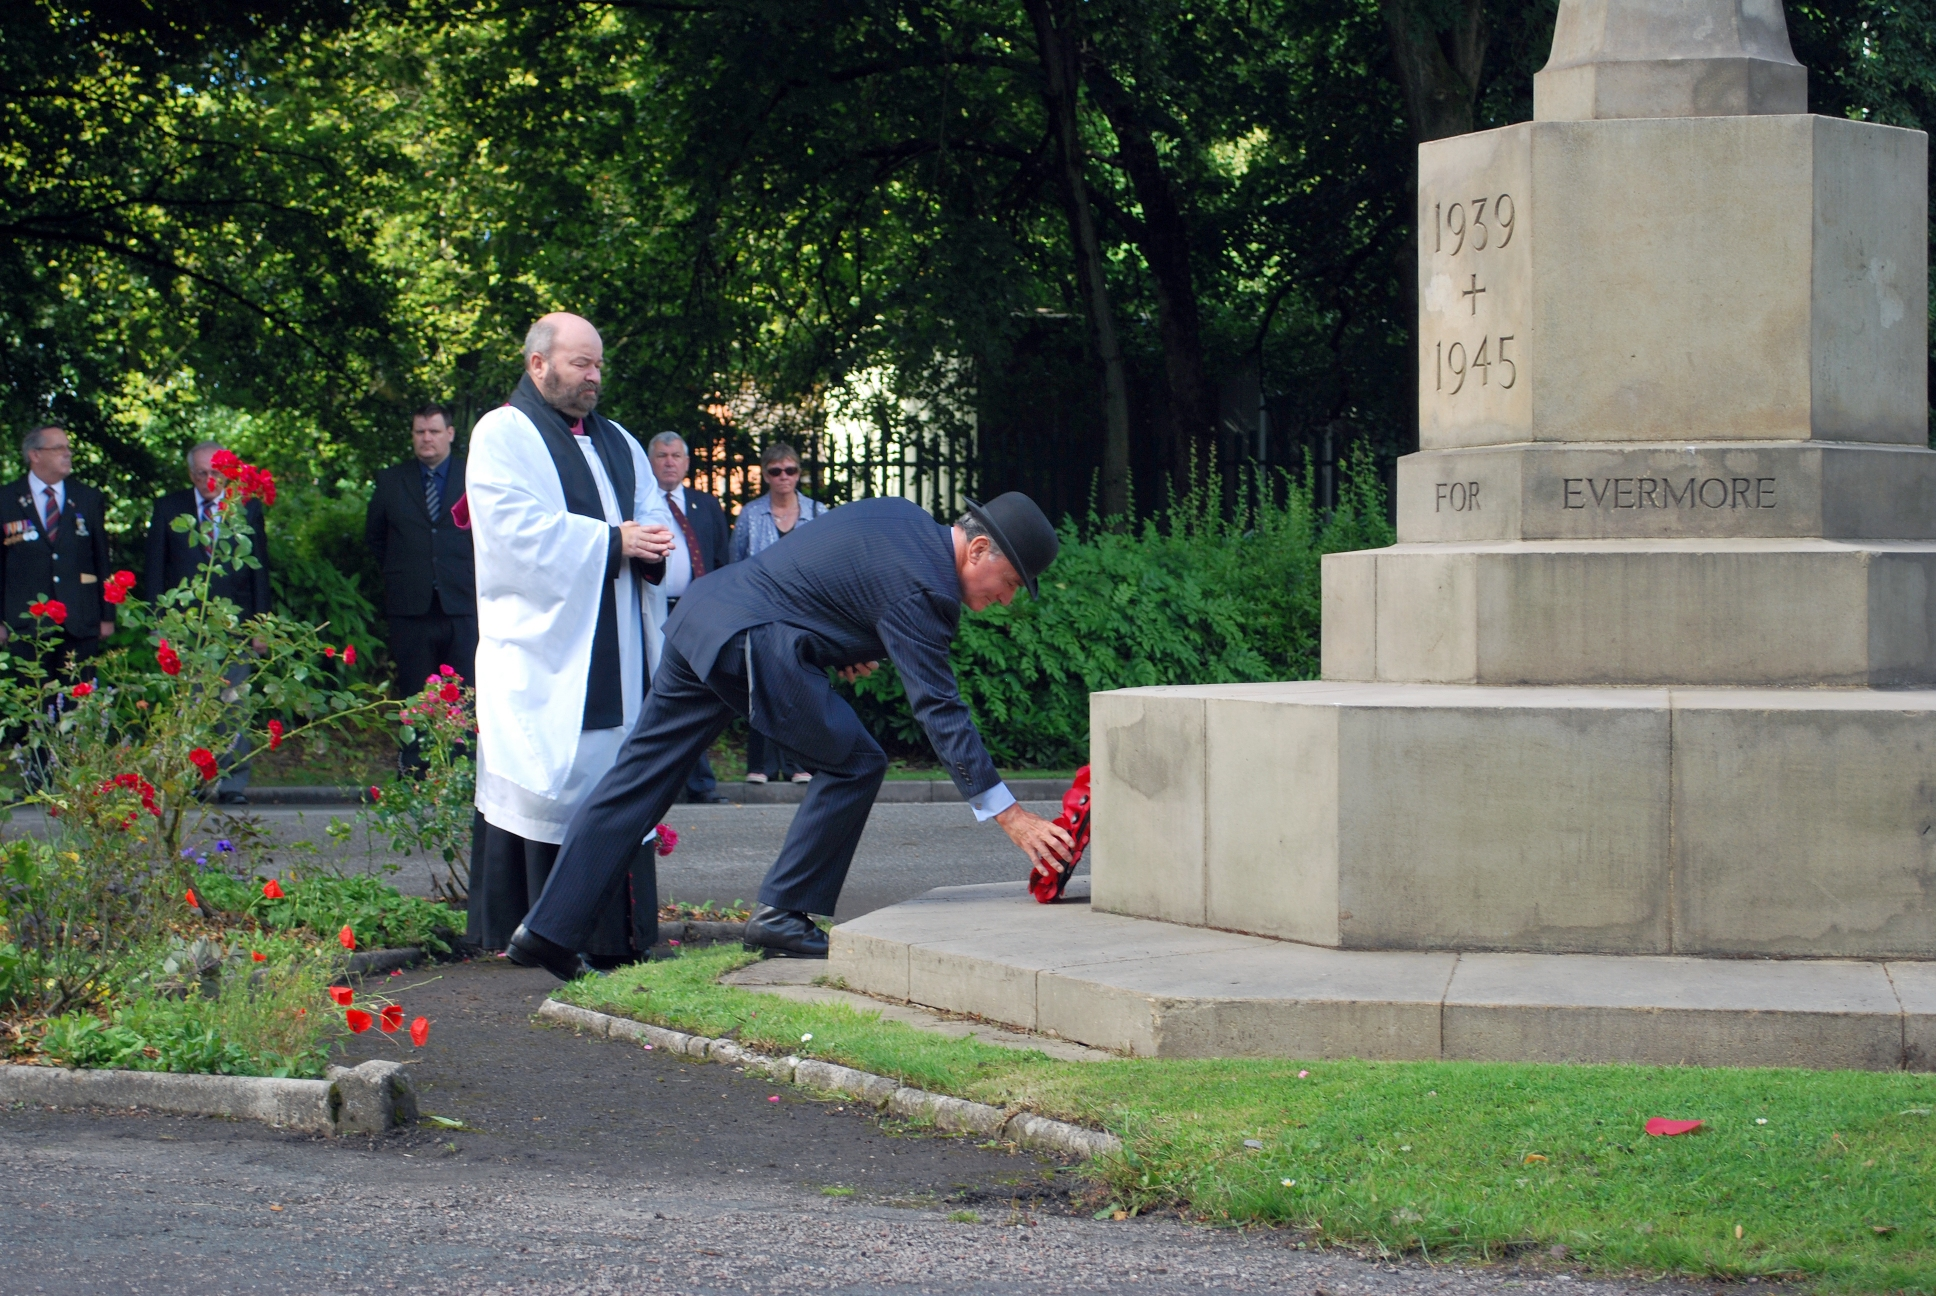 68th Anniversary of V.J. Day Laying Wreath - 22